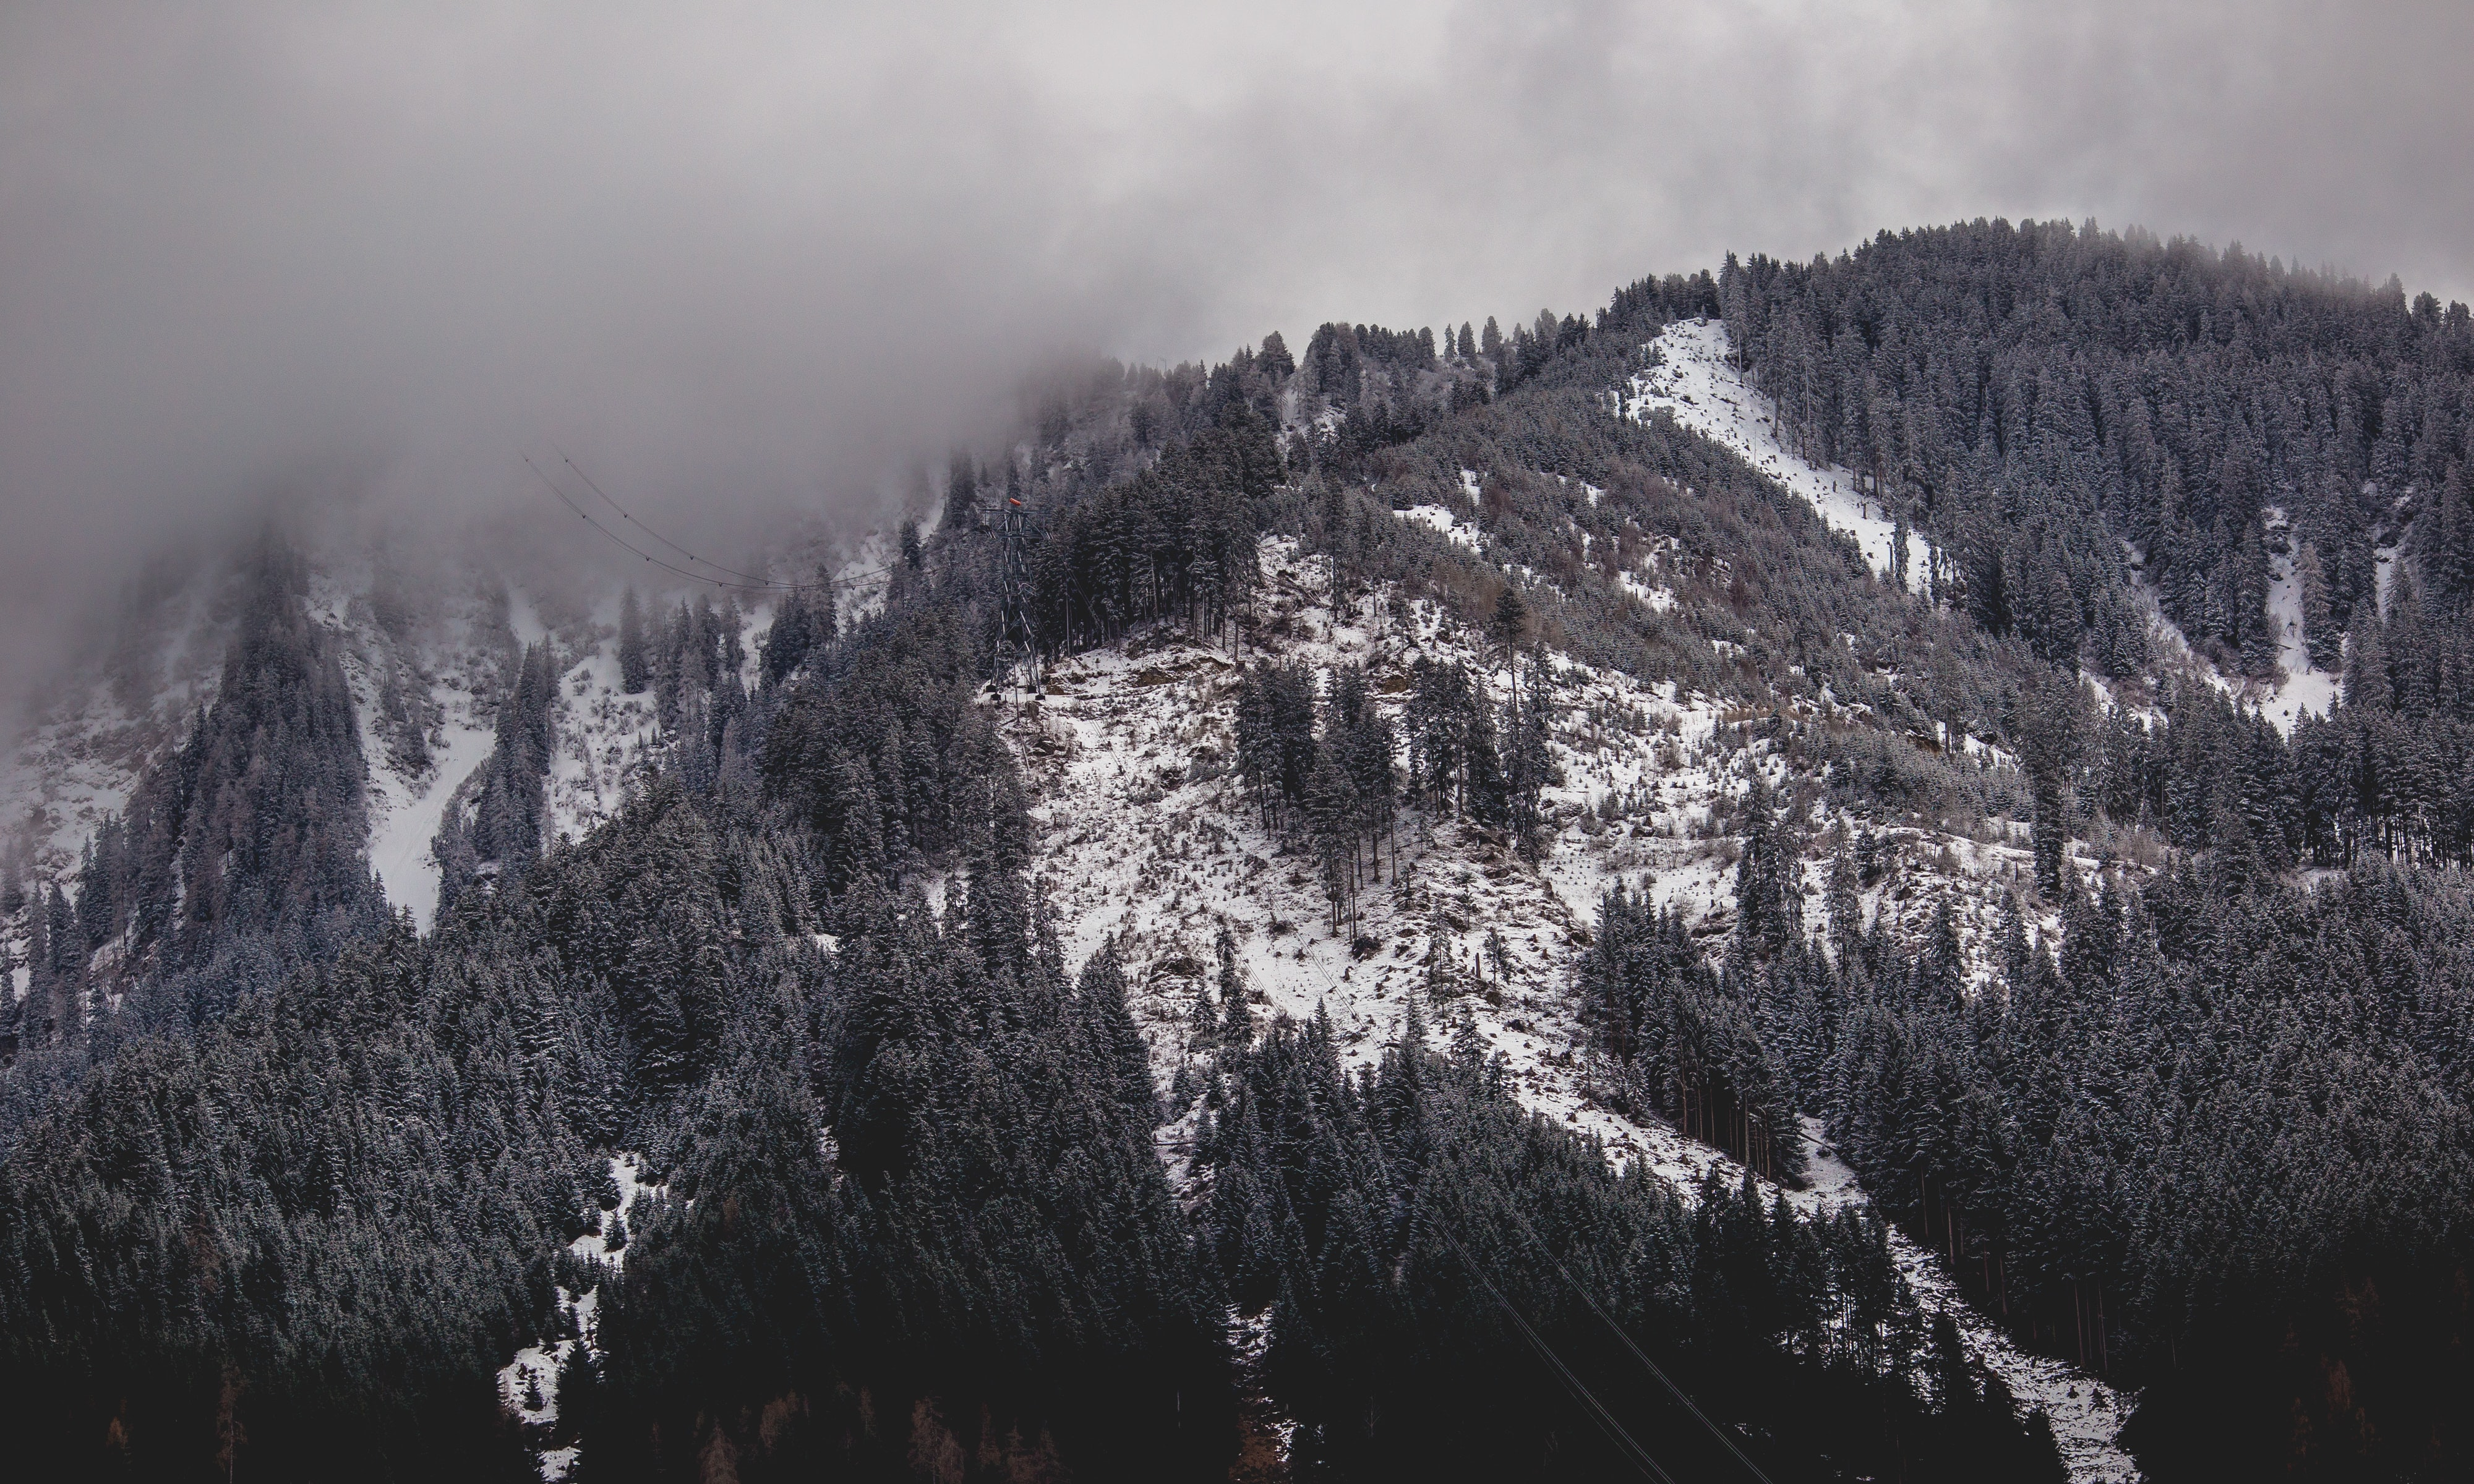 grayscale photography of snowy mountain covered by clouds